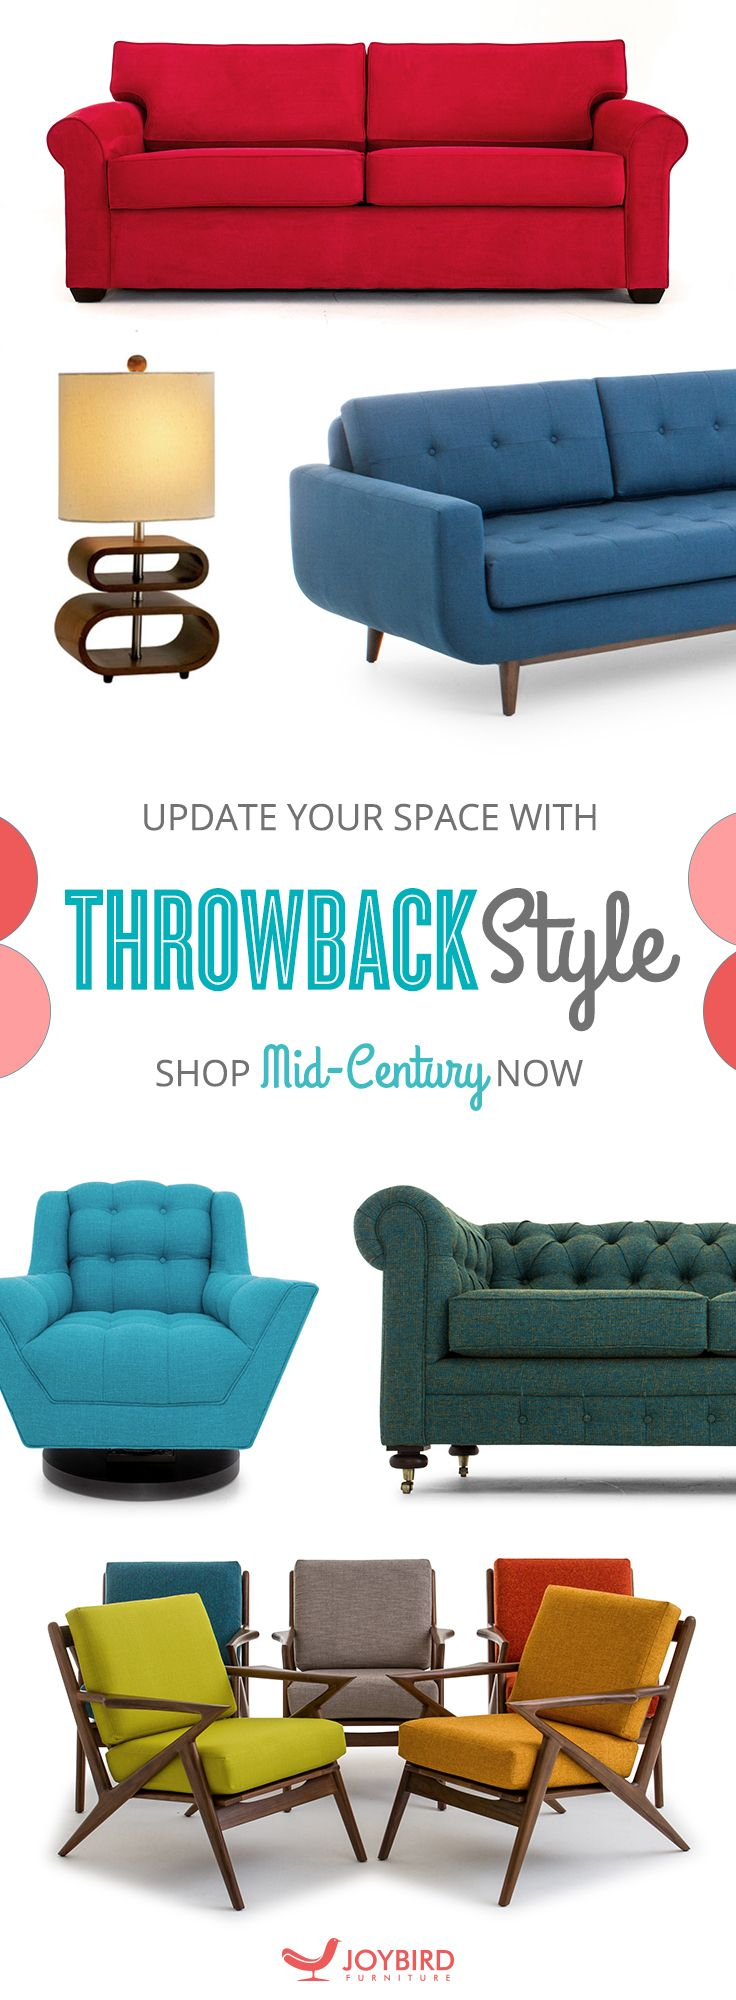 Great Ready To Upgrade Your Furniture? Shop Now U0026 Save Up To 25% Off During